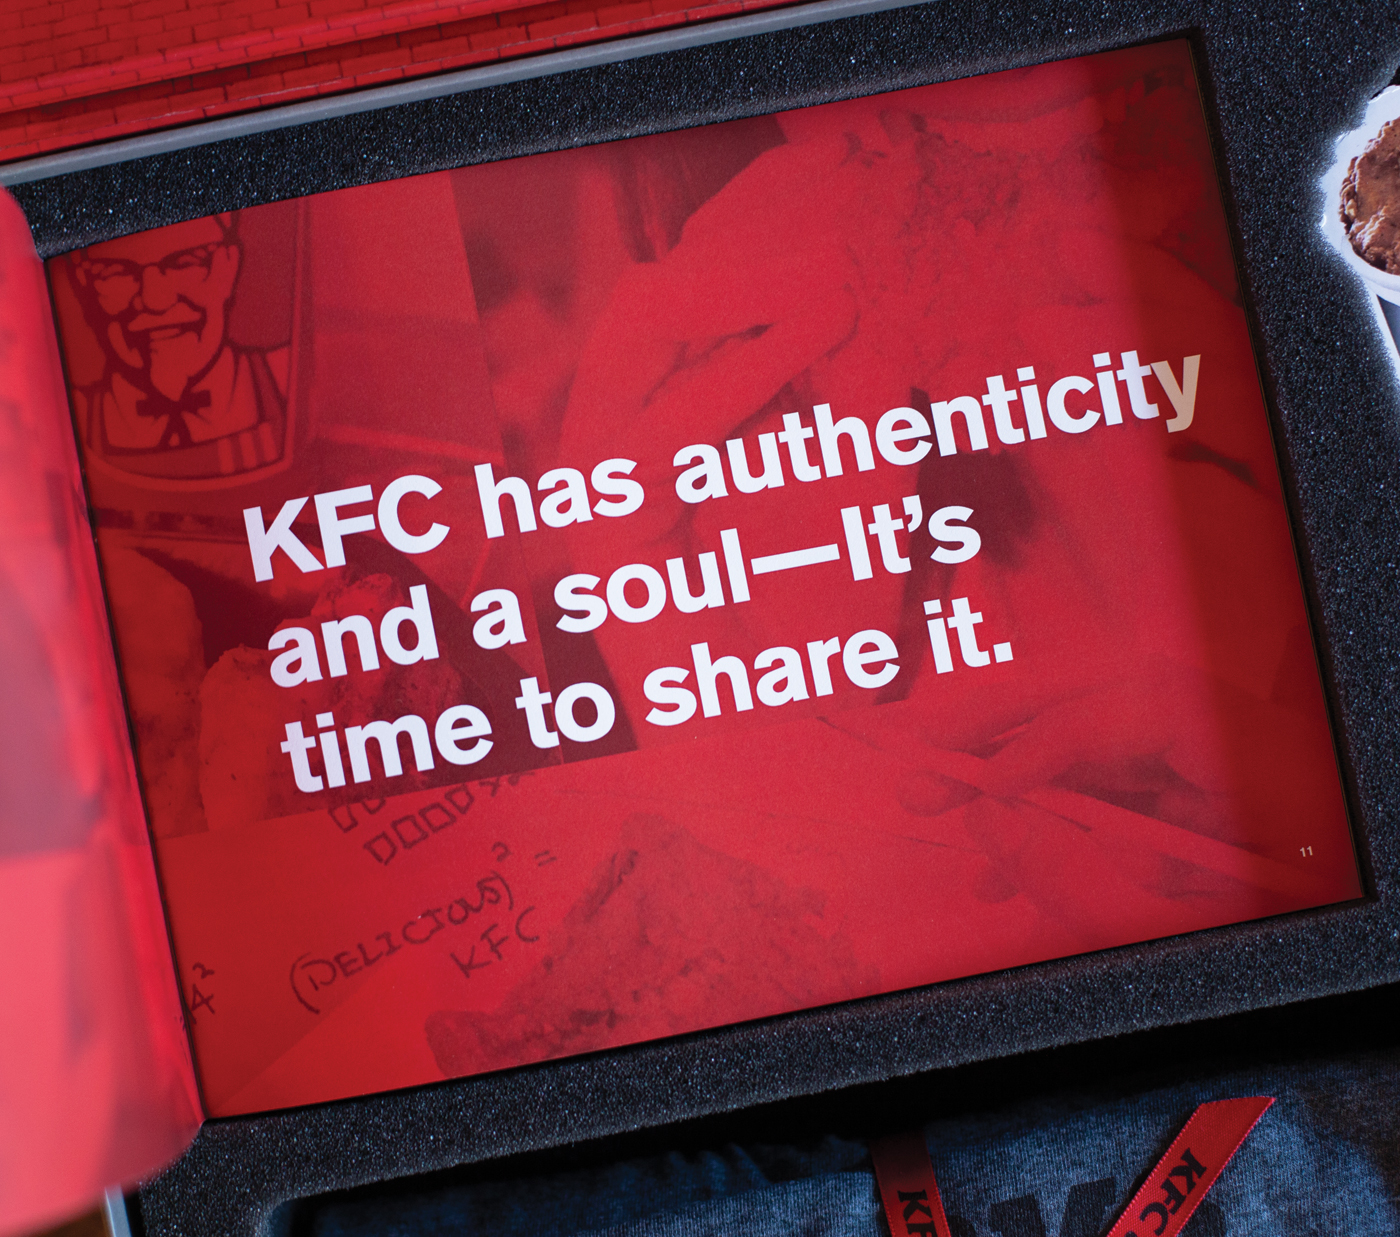 kfc_positioning_mobile_4